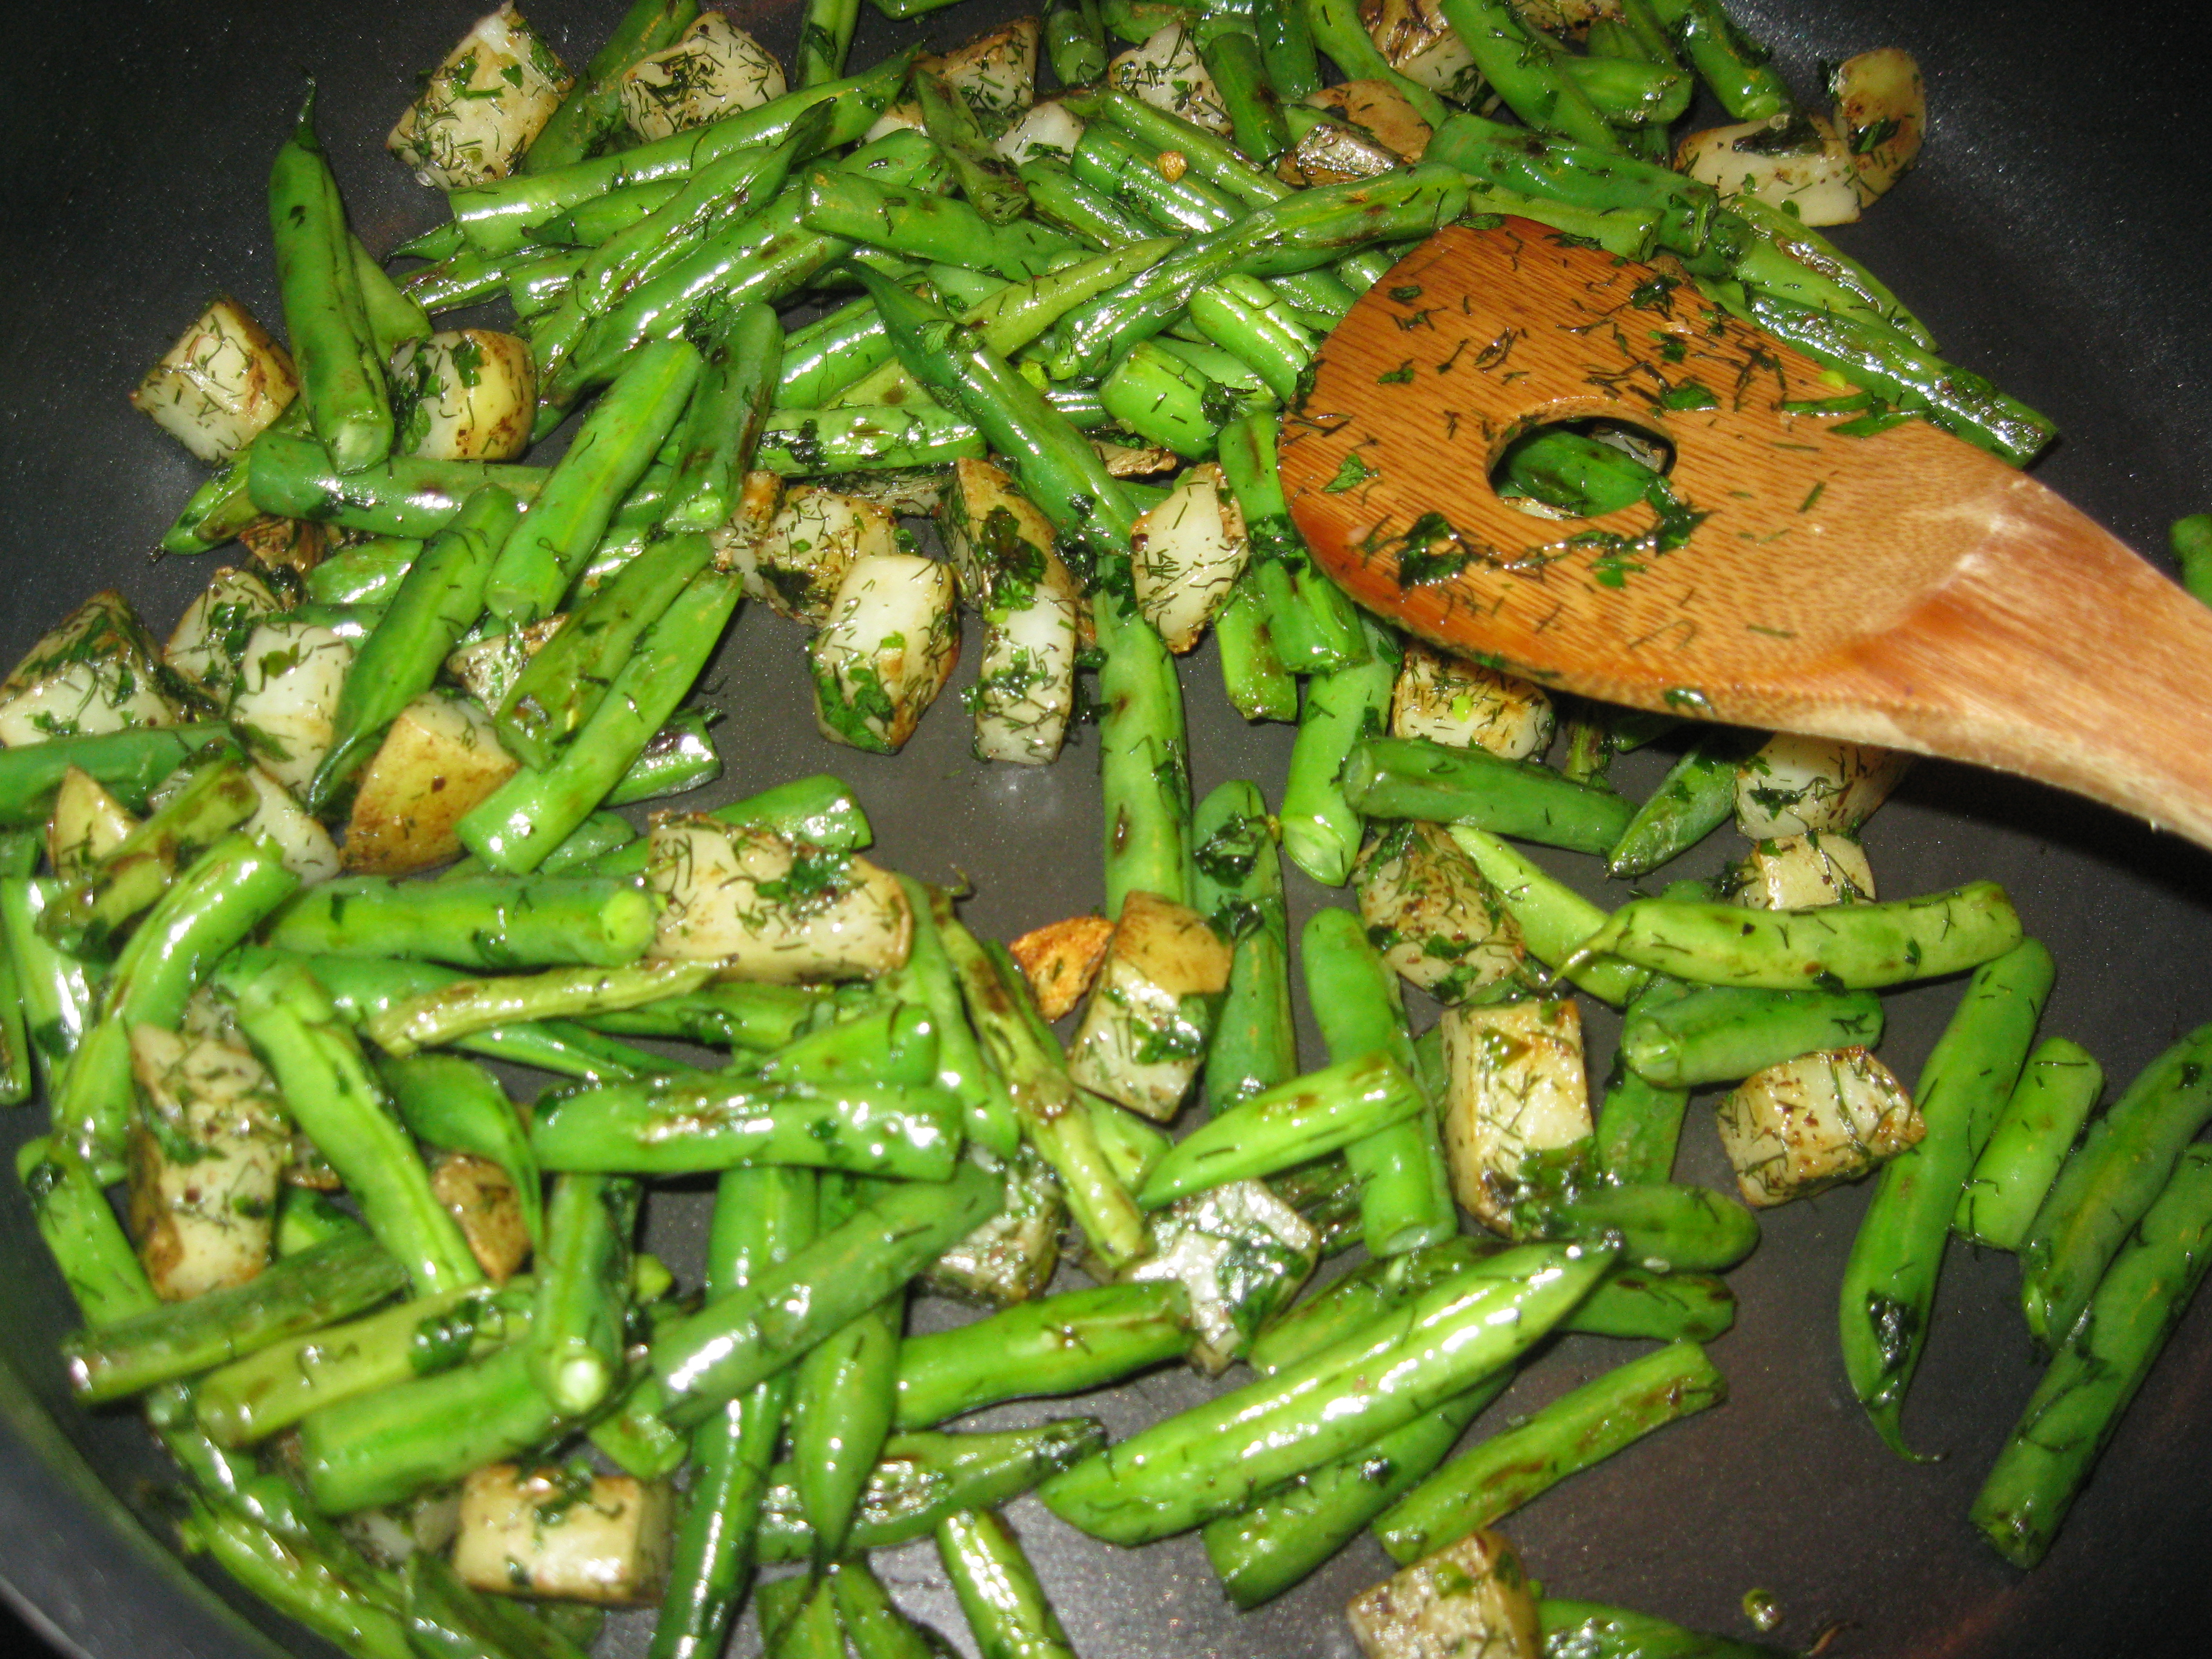 green beans one of your lb of fresh green beans fresh green beans i ...